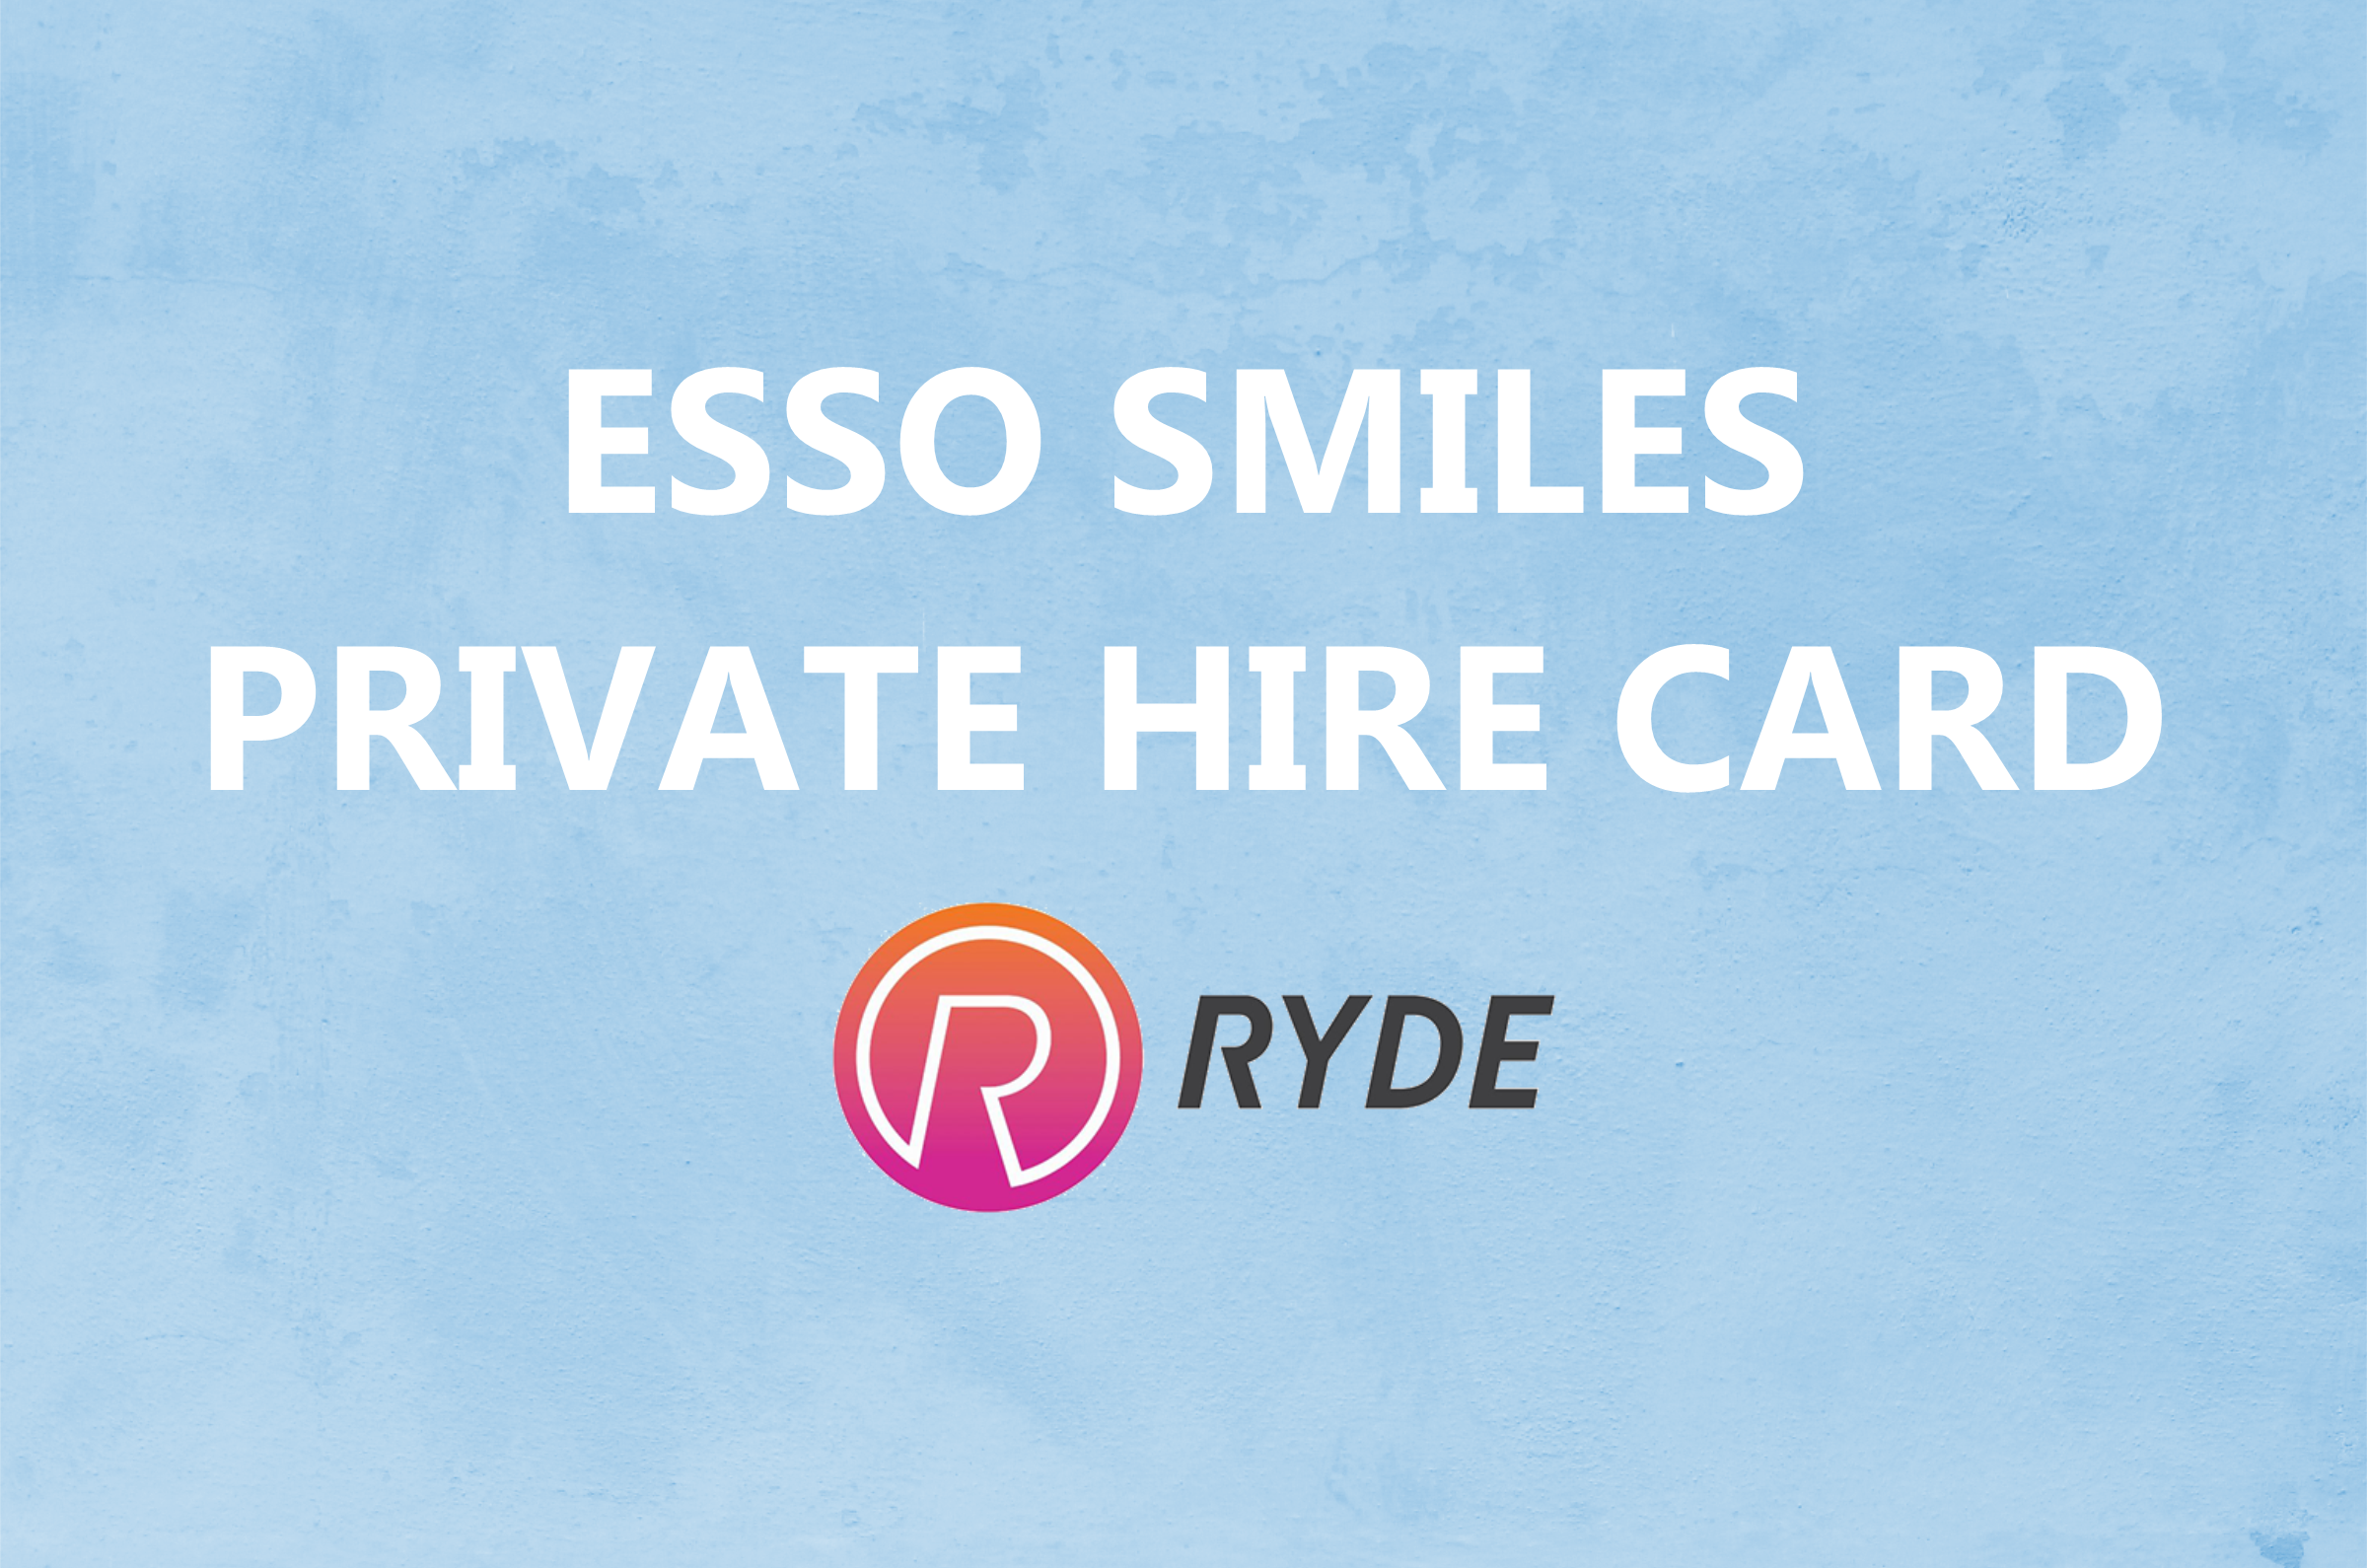 Esso Smiles PH Card for Ryde